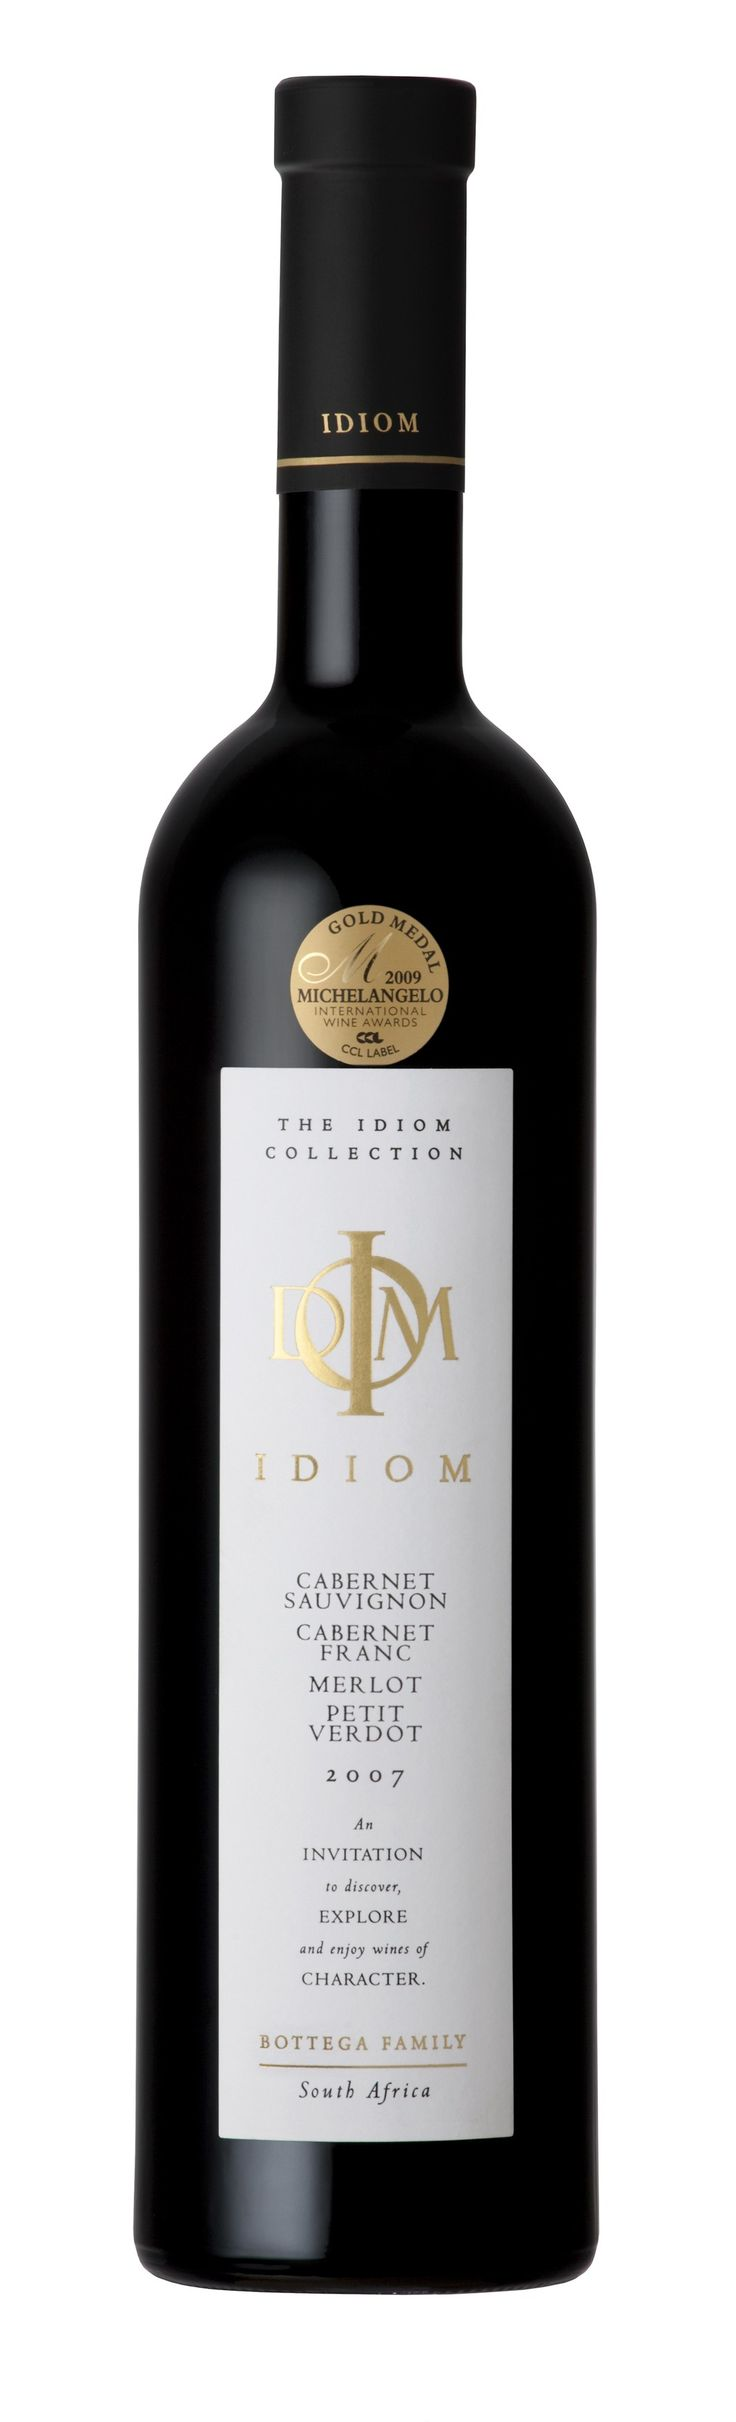 Enjoy with a potjie: Idiom Bordeaux-Style Blend 2007 86 points, 5* value!  #wine #SouthAfrica